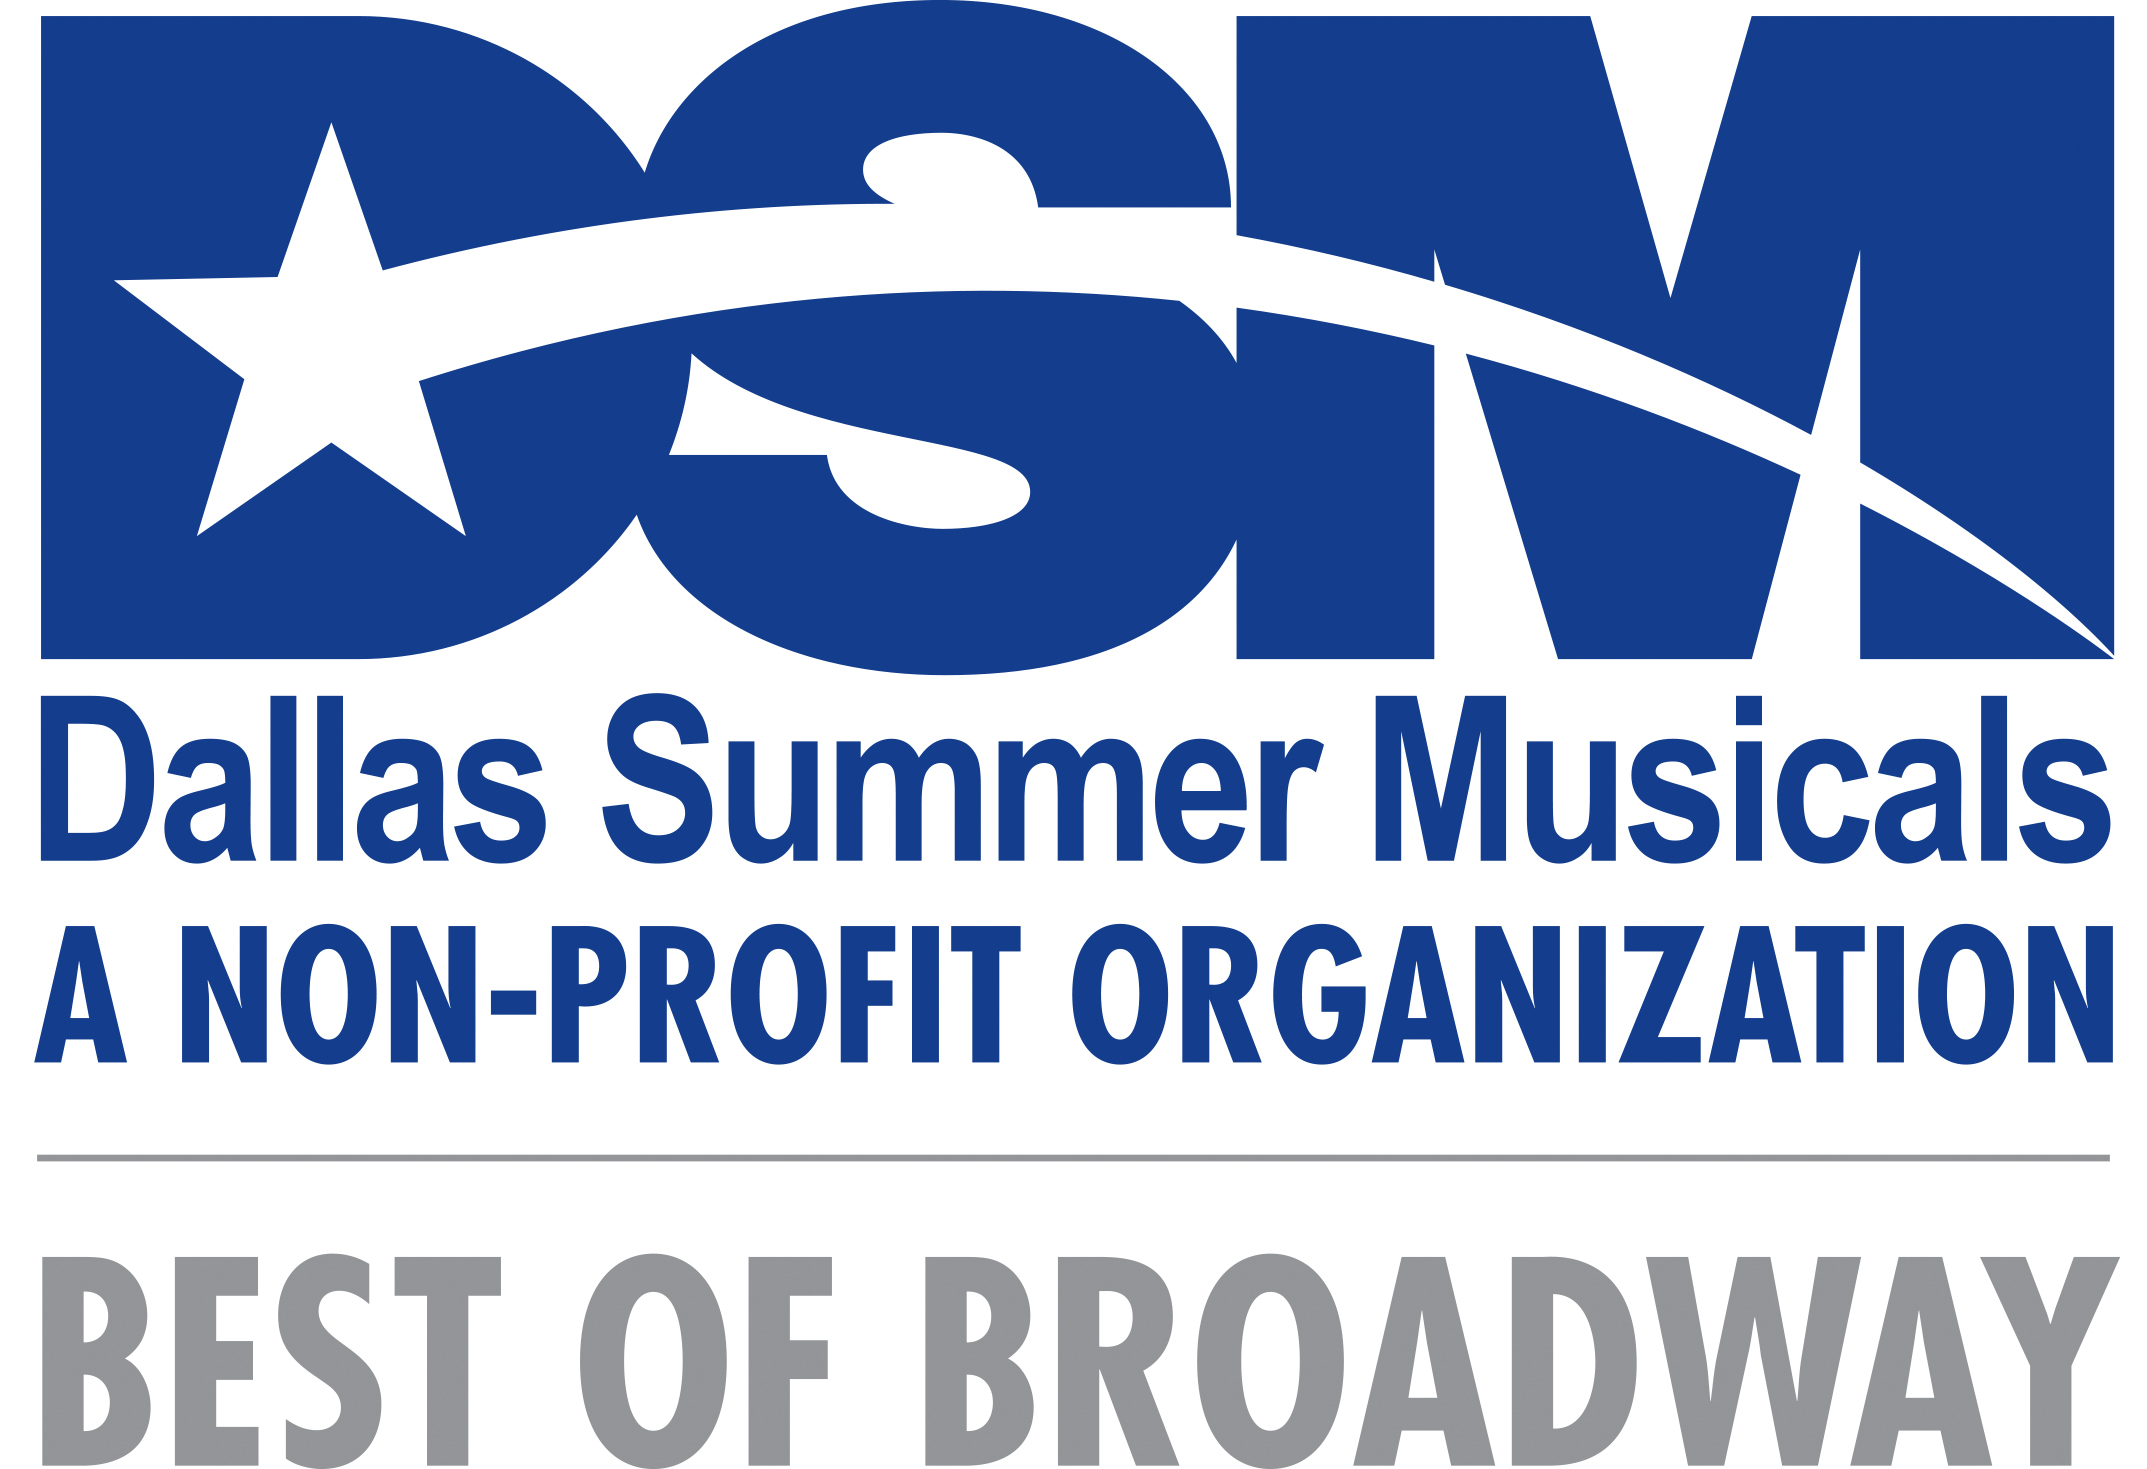 Dallas Summer Musicals Inc. Dtd 121862